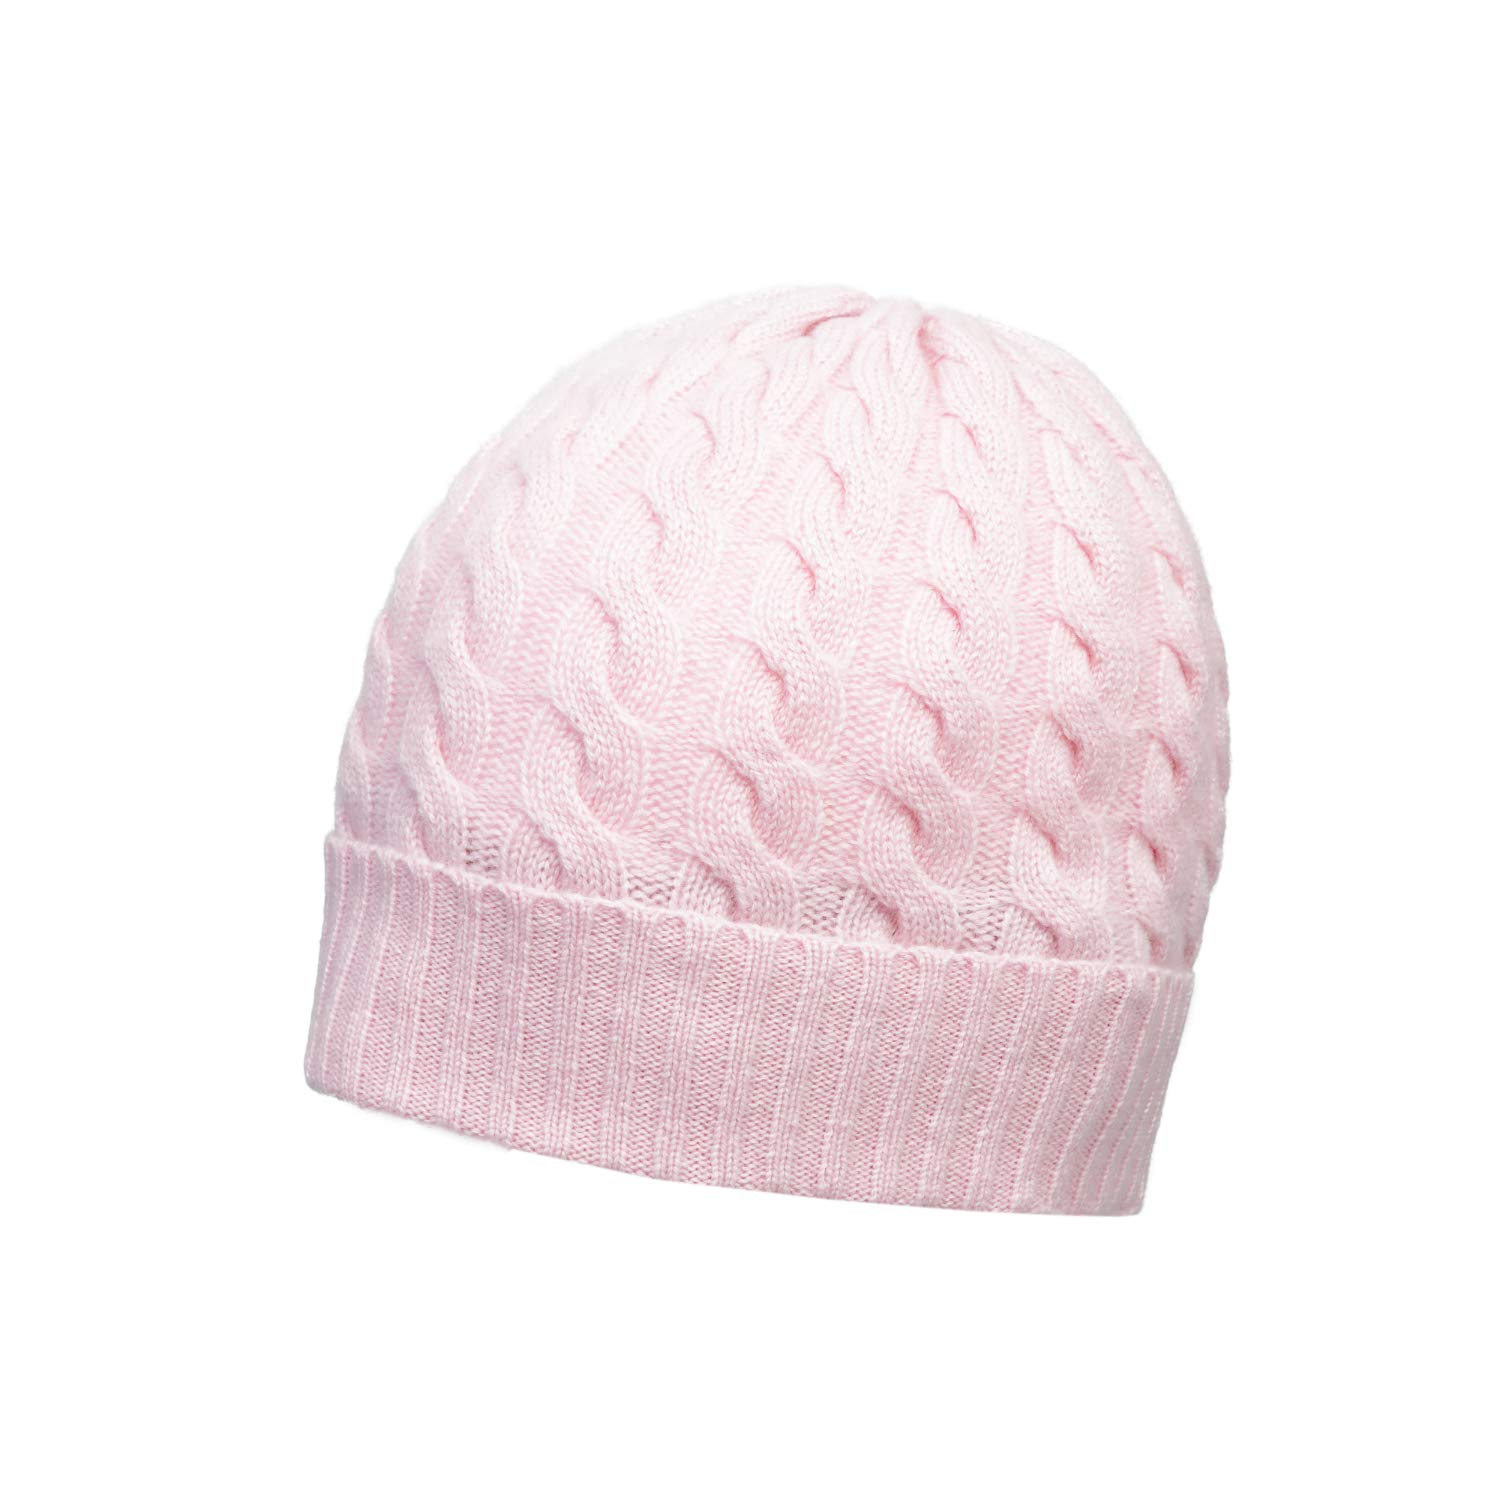 Lomond - Pure 4-Ply Cashmere Cable-Knit Beanie (Powder Pink)